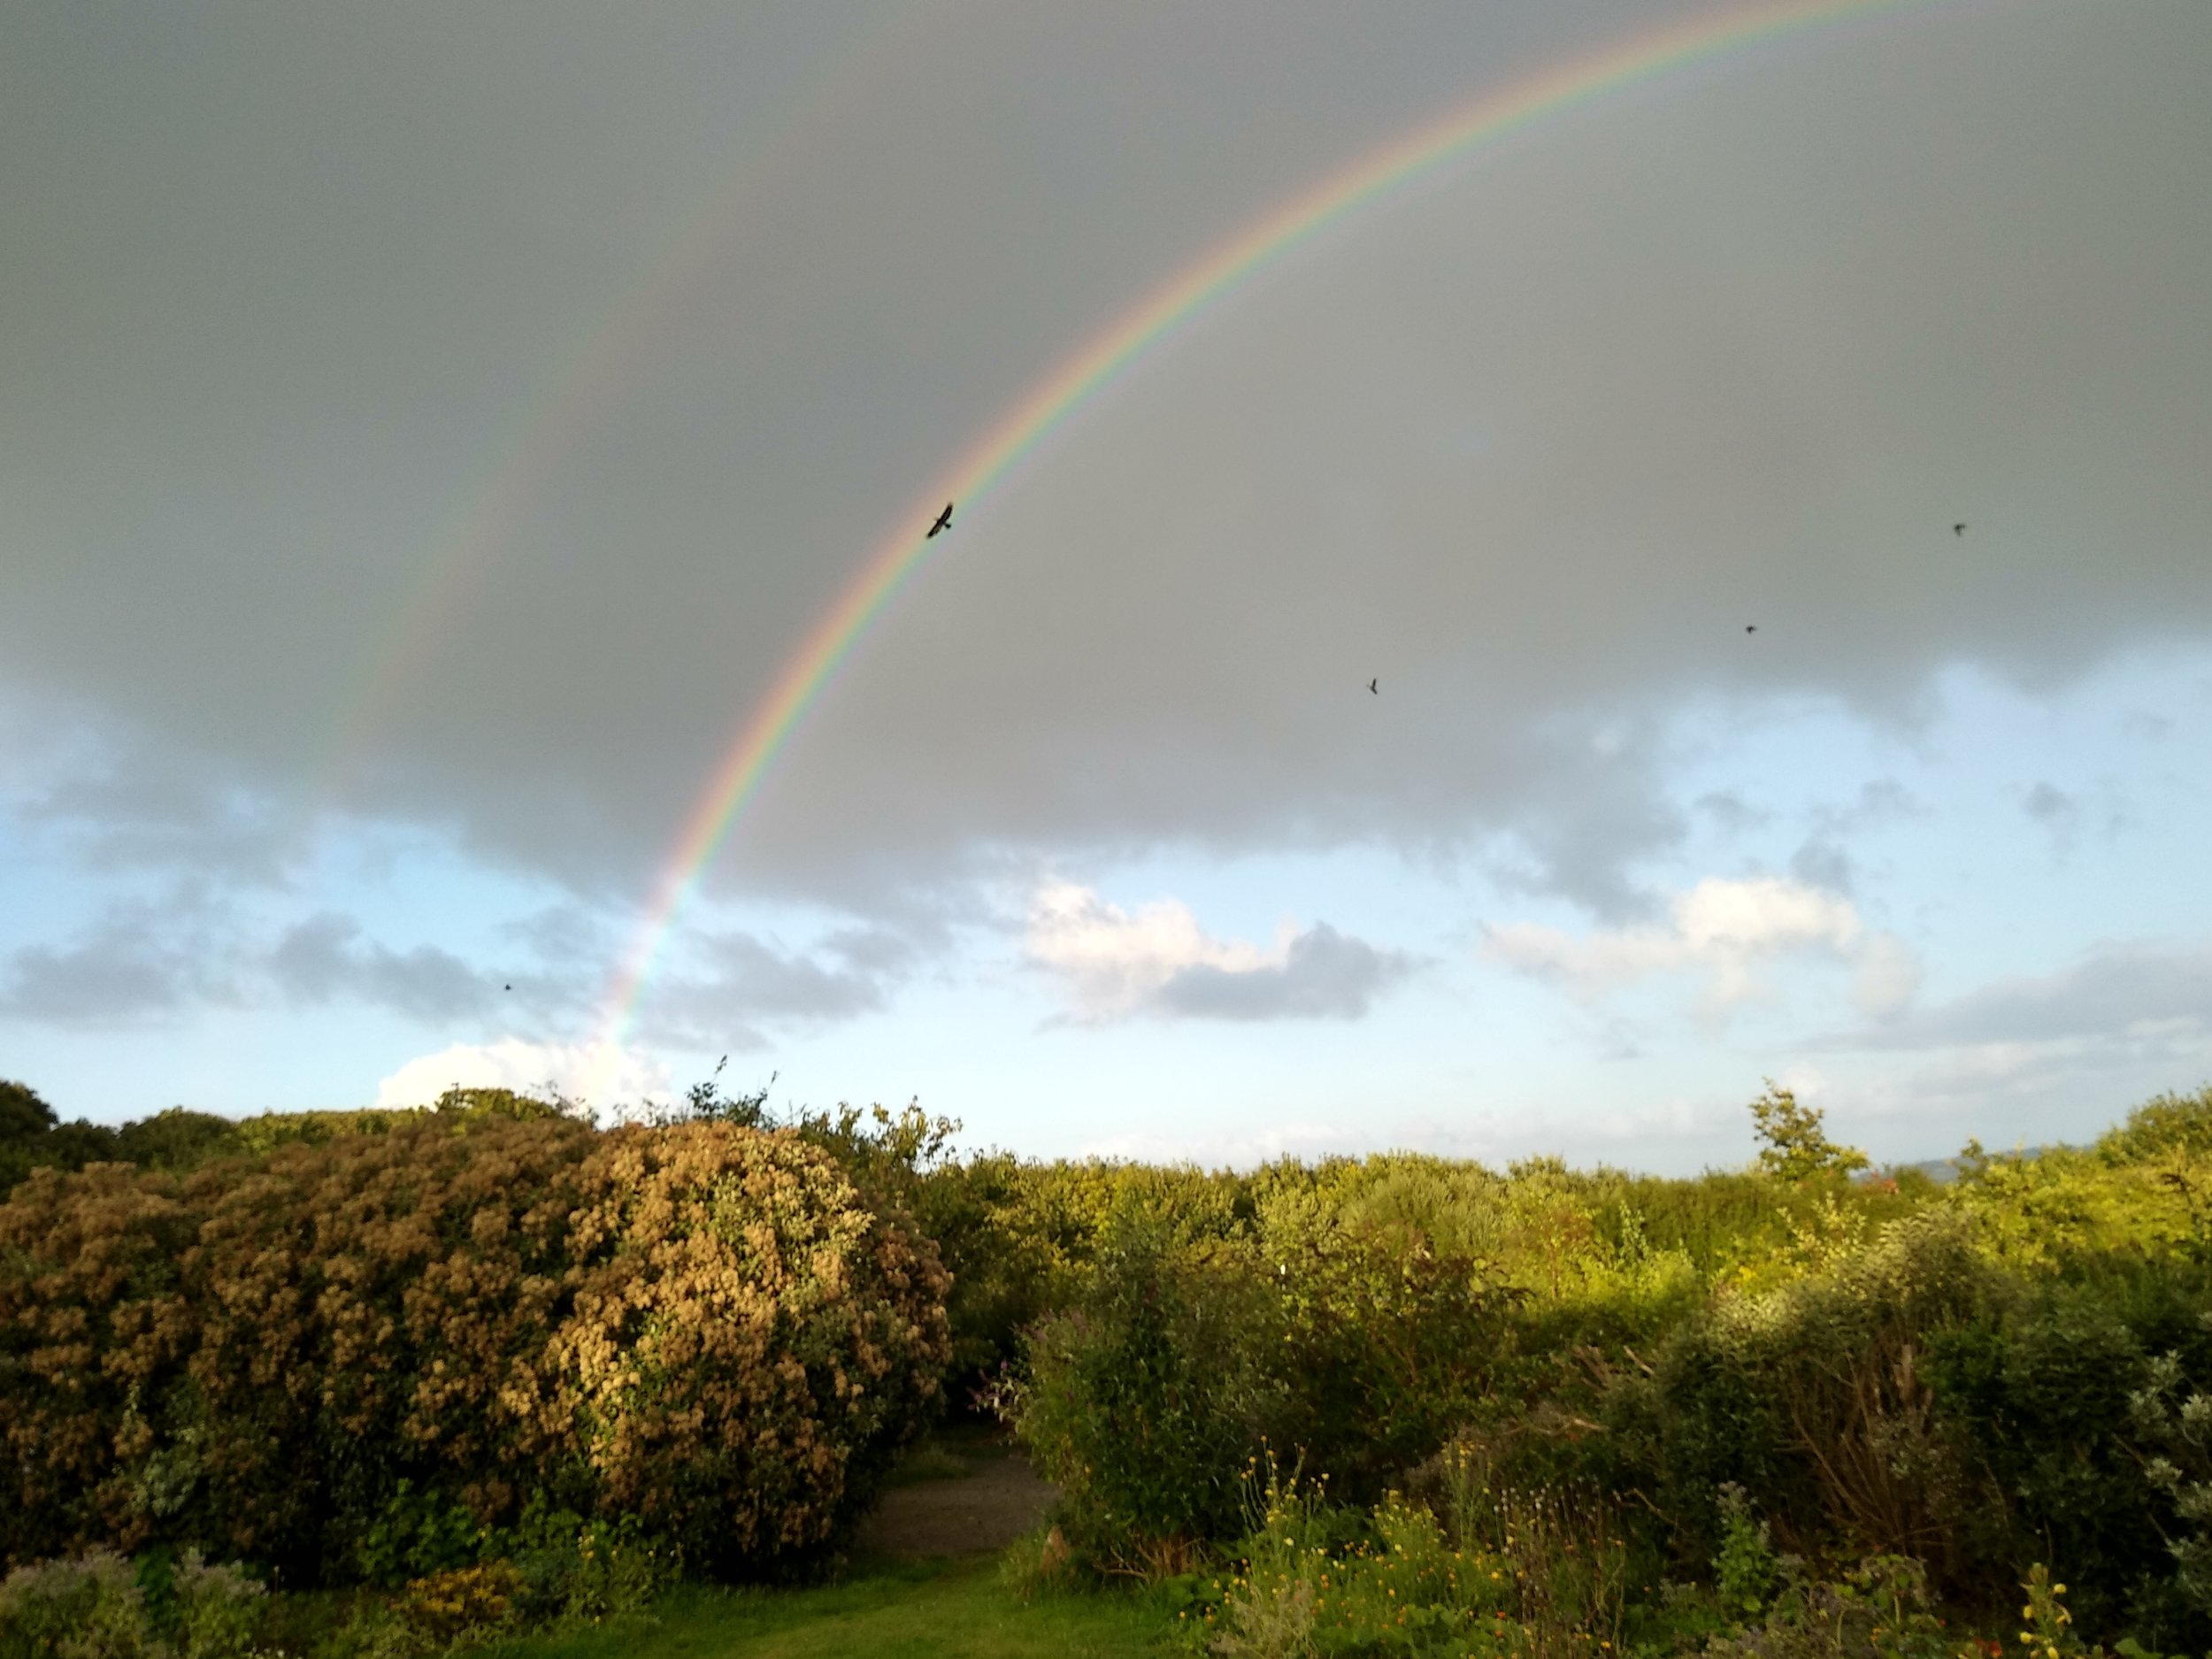 A crow flying through a double rainbow? What does it mean??!